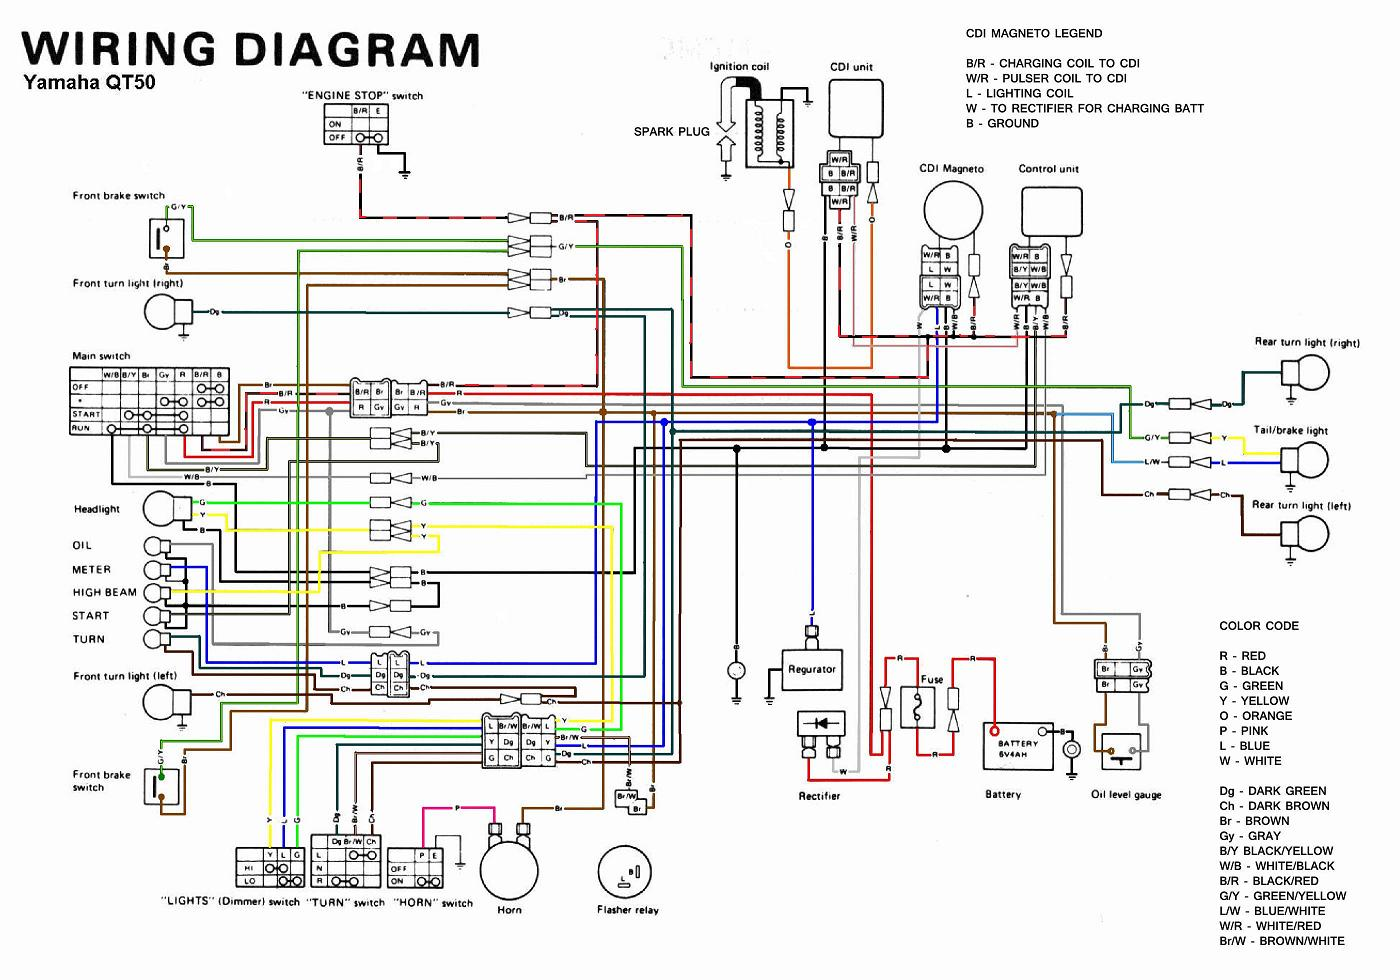 Honda Express Wiring Diagram - wiring diagrams